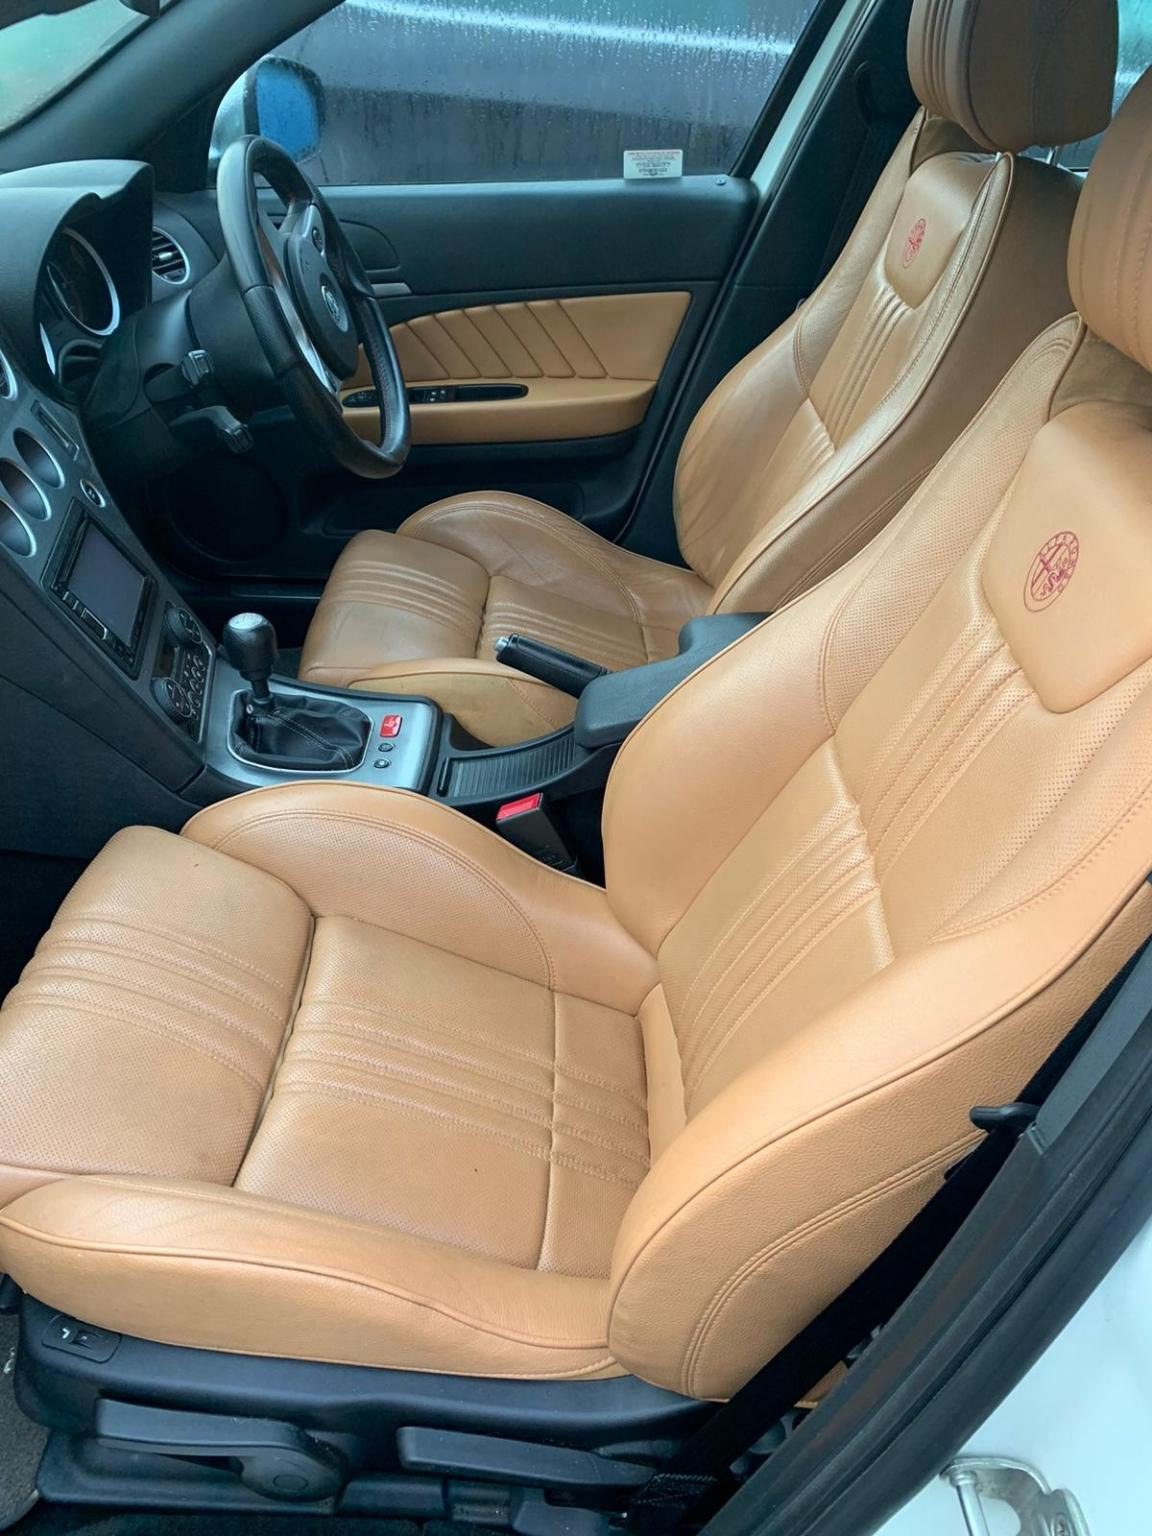 Alfa 159 Ti Tan Leather Interior For Sale I In Rh2 Banstead Fur 250 00 Zum Verkauf Shpock At